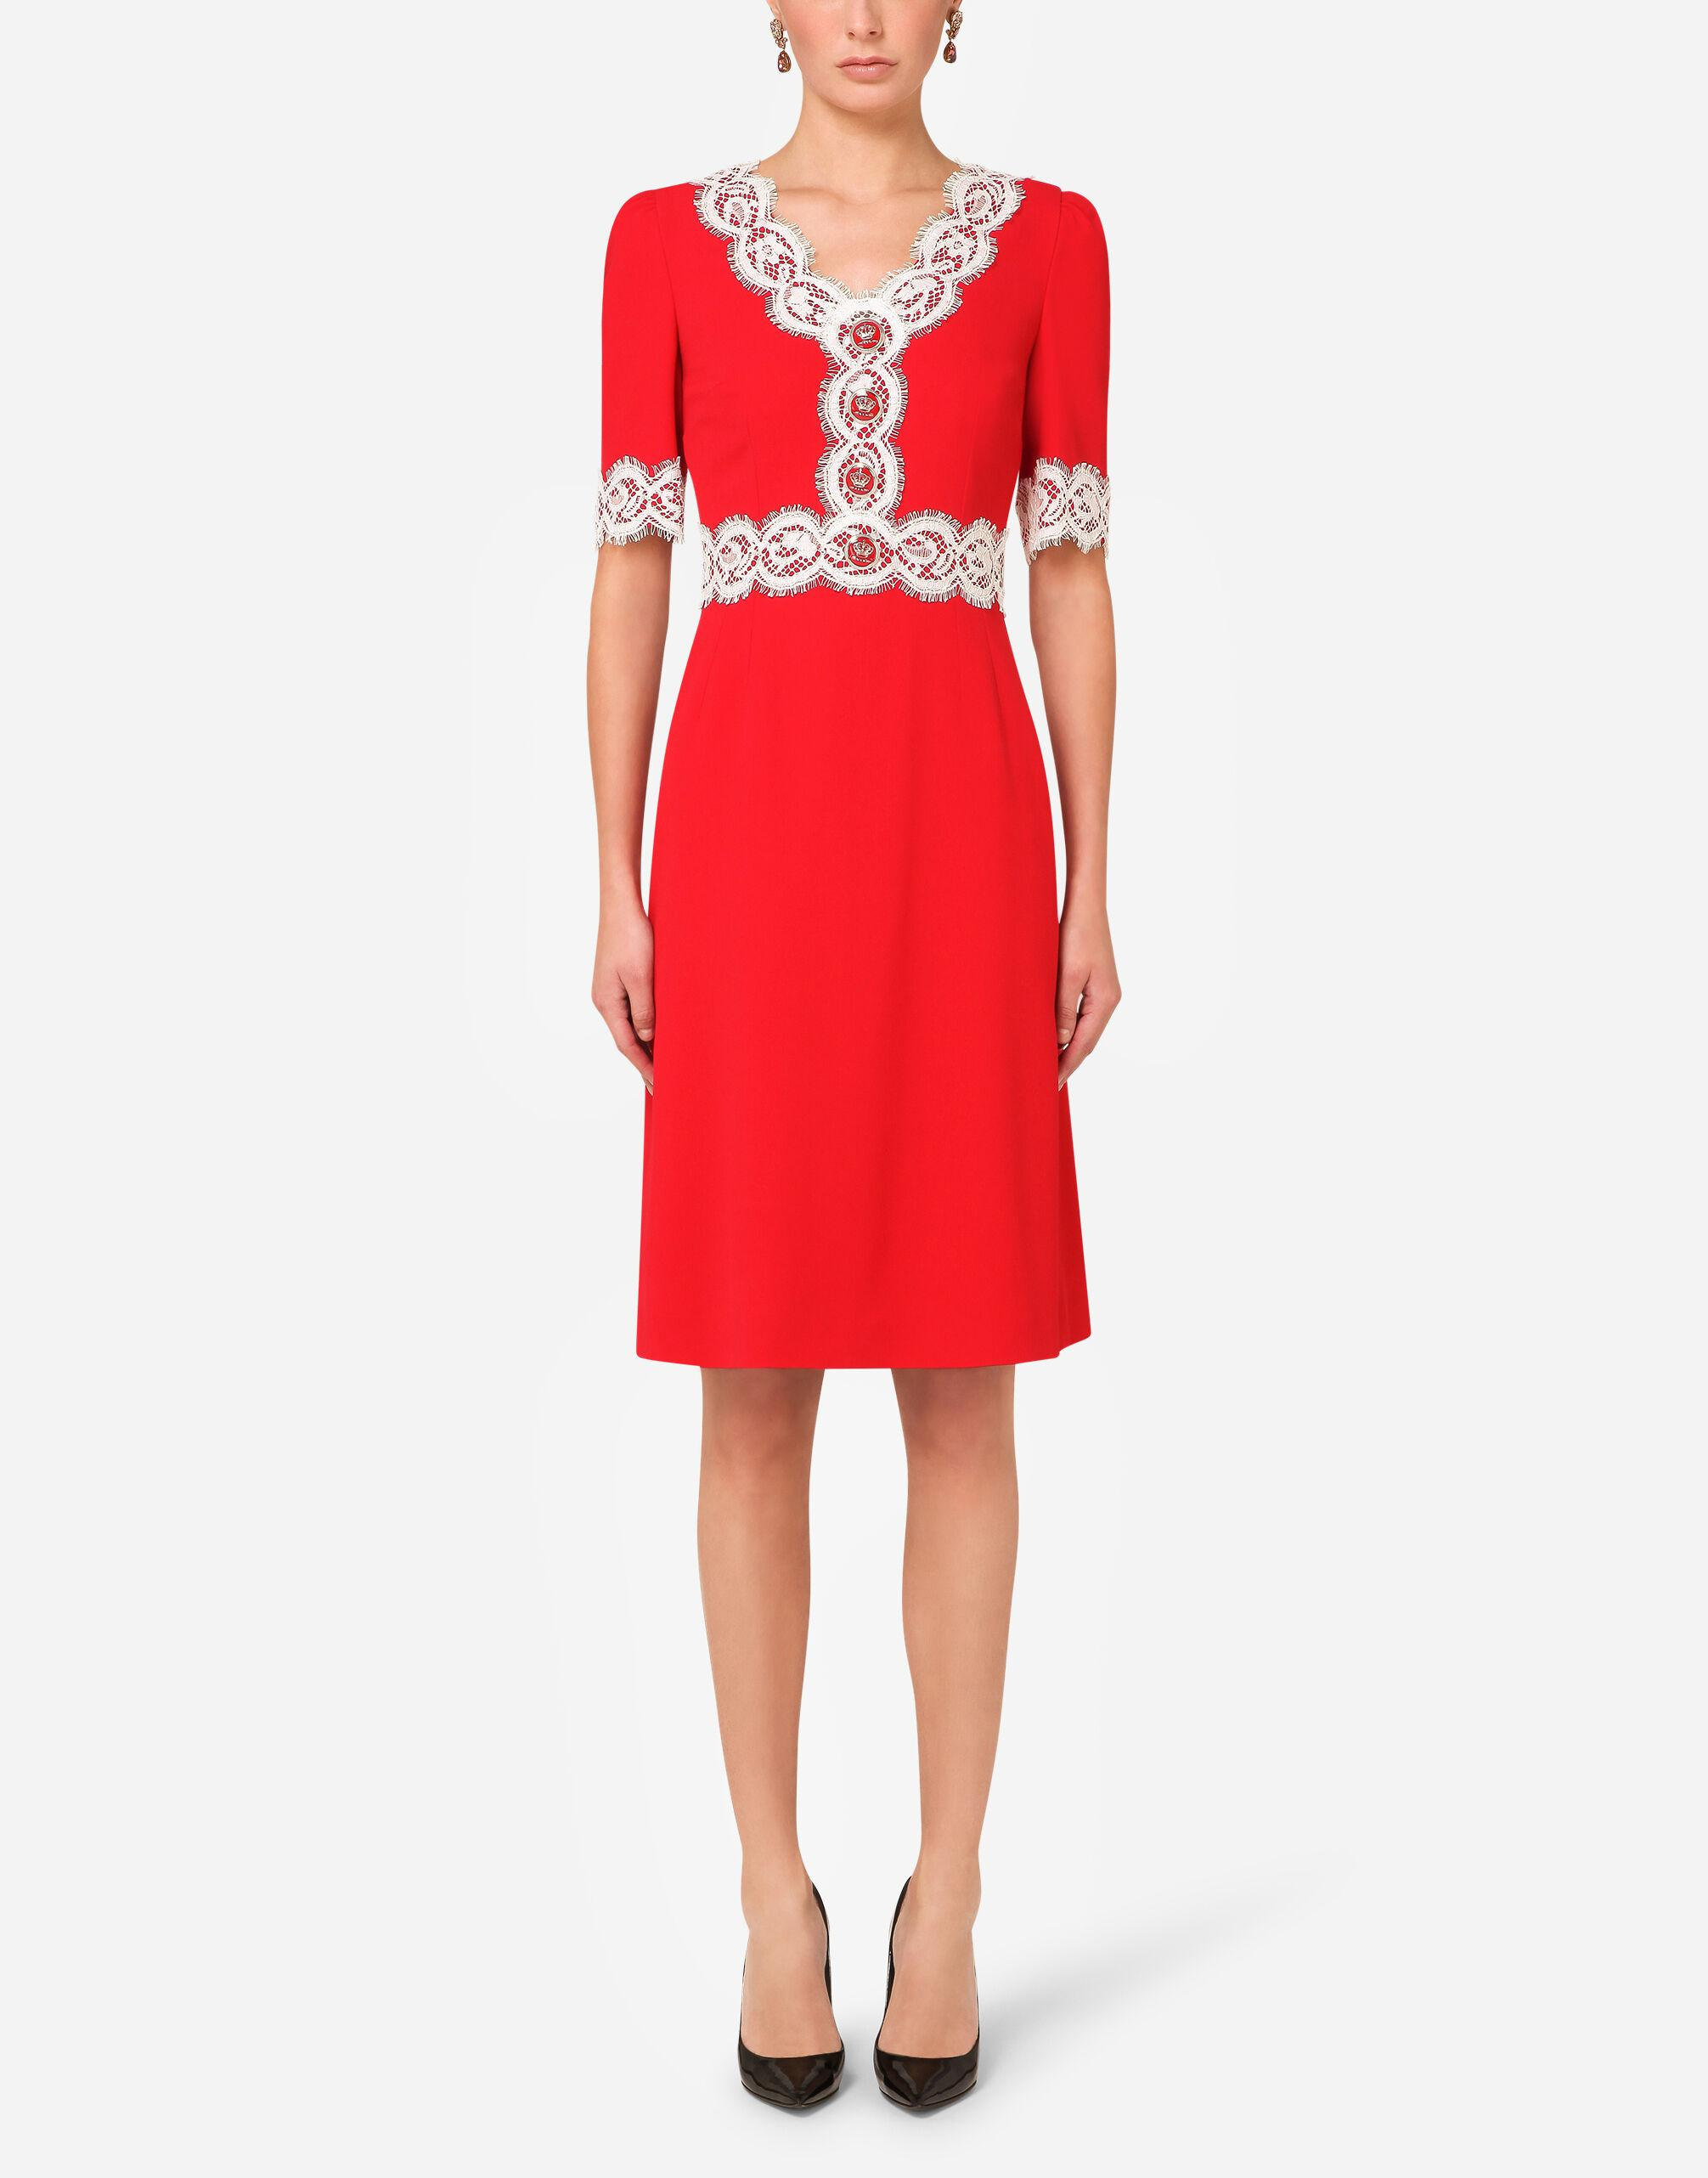 Cady midi dress with lace detailing